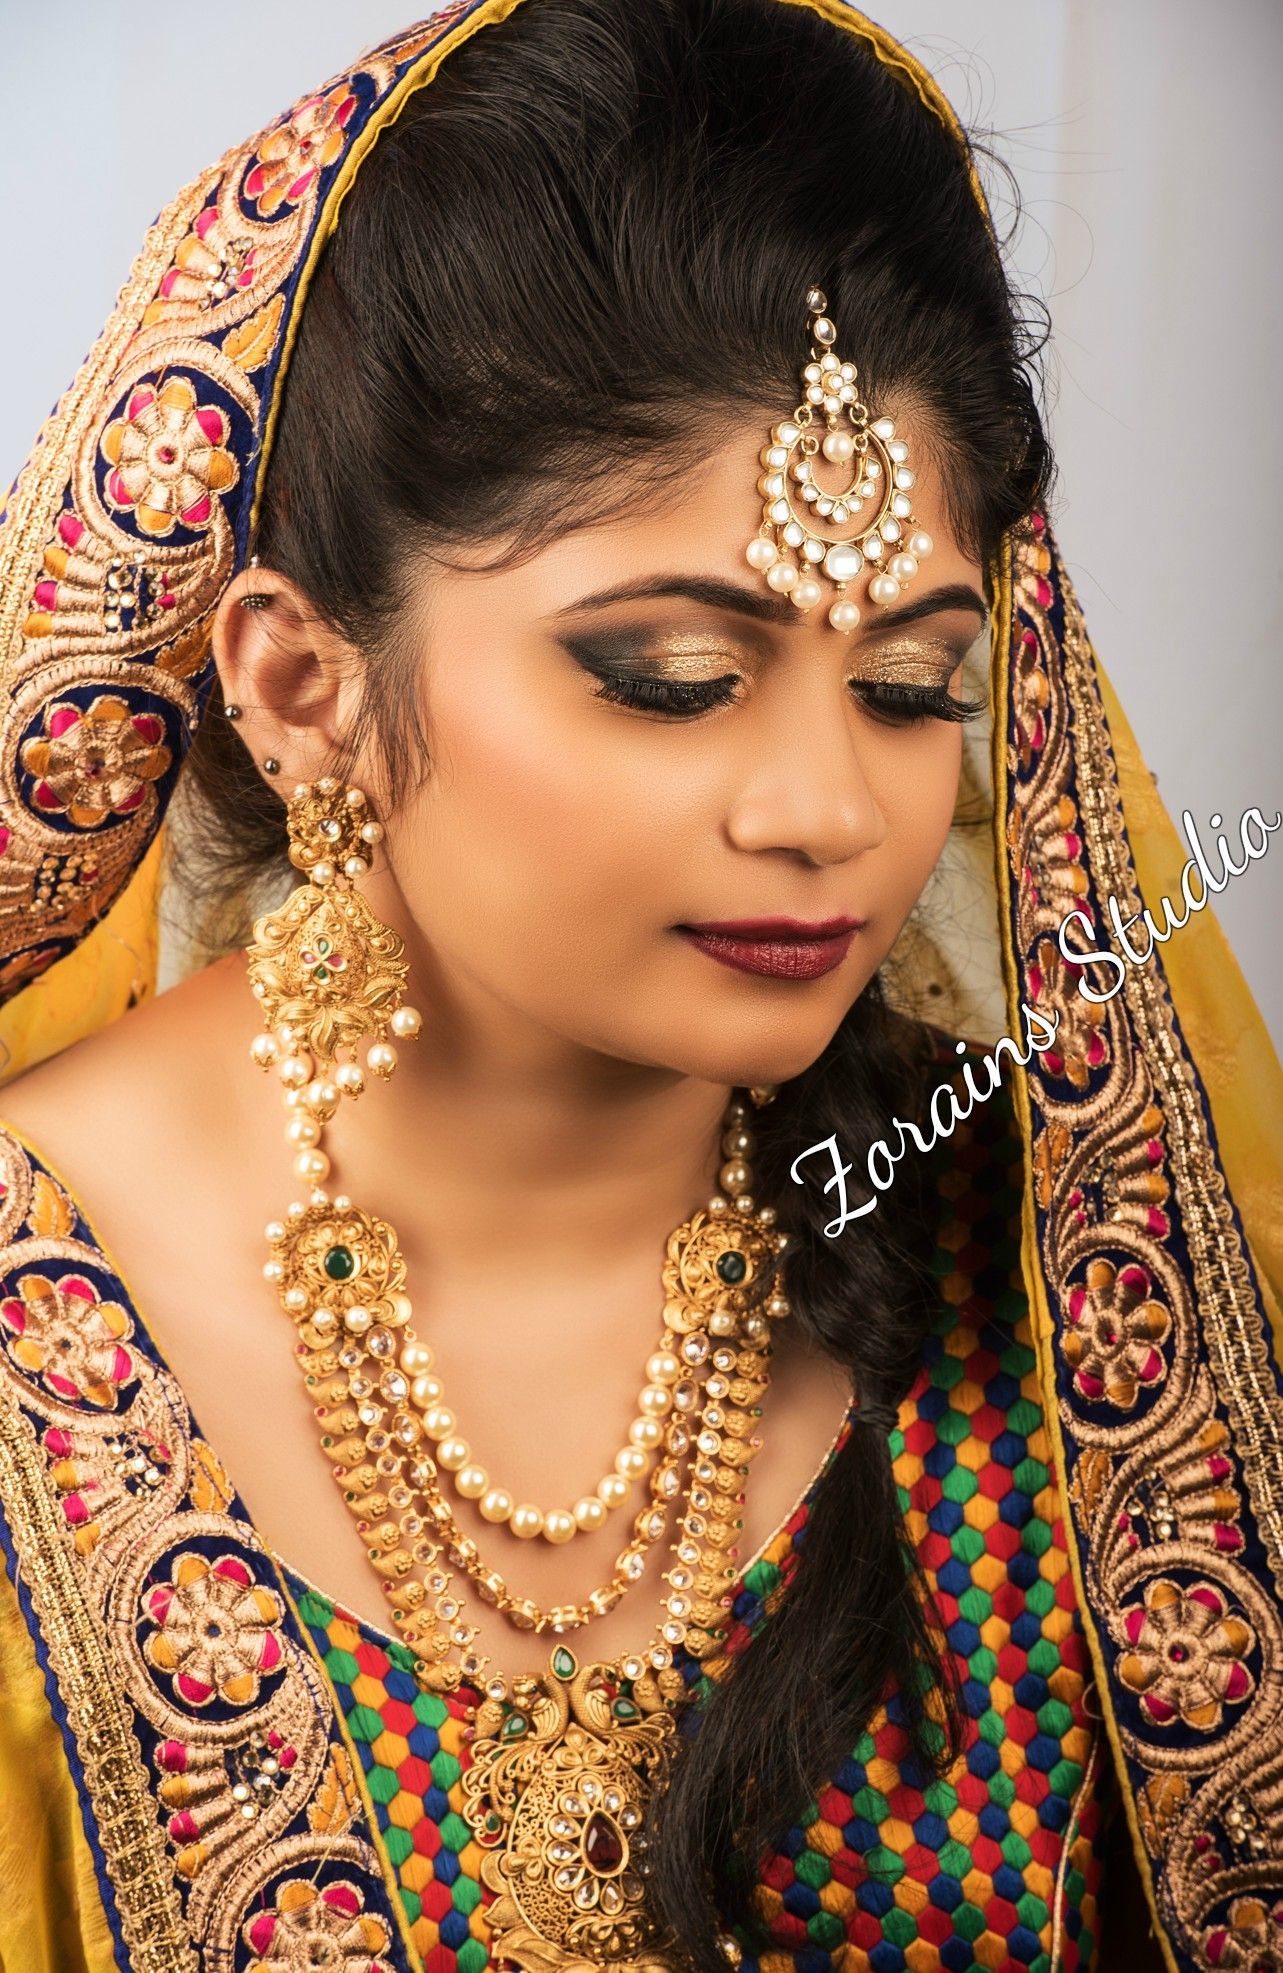 pin by zorains studio on south indian brides | south indian